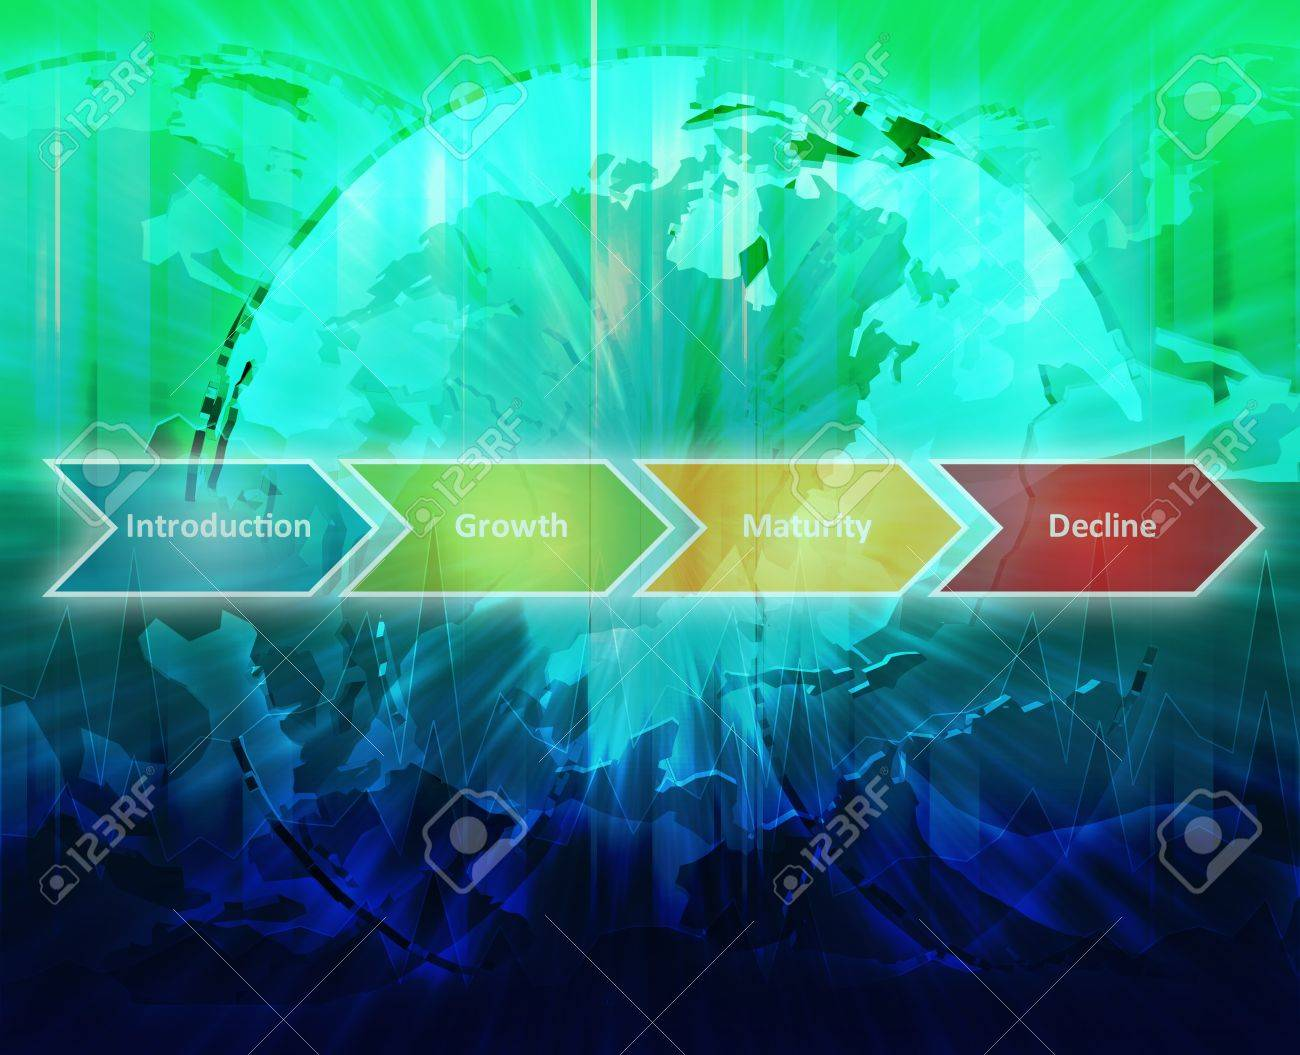 International Product Lifecycle business diagram management strategy concept chart illustration Stock Photo - 9914874